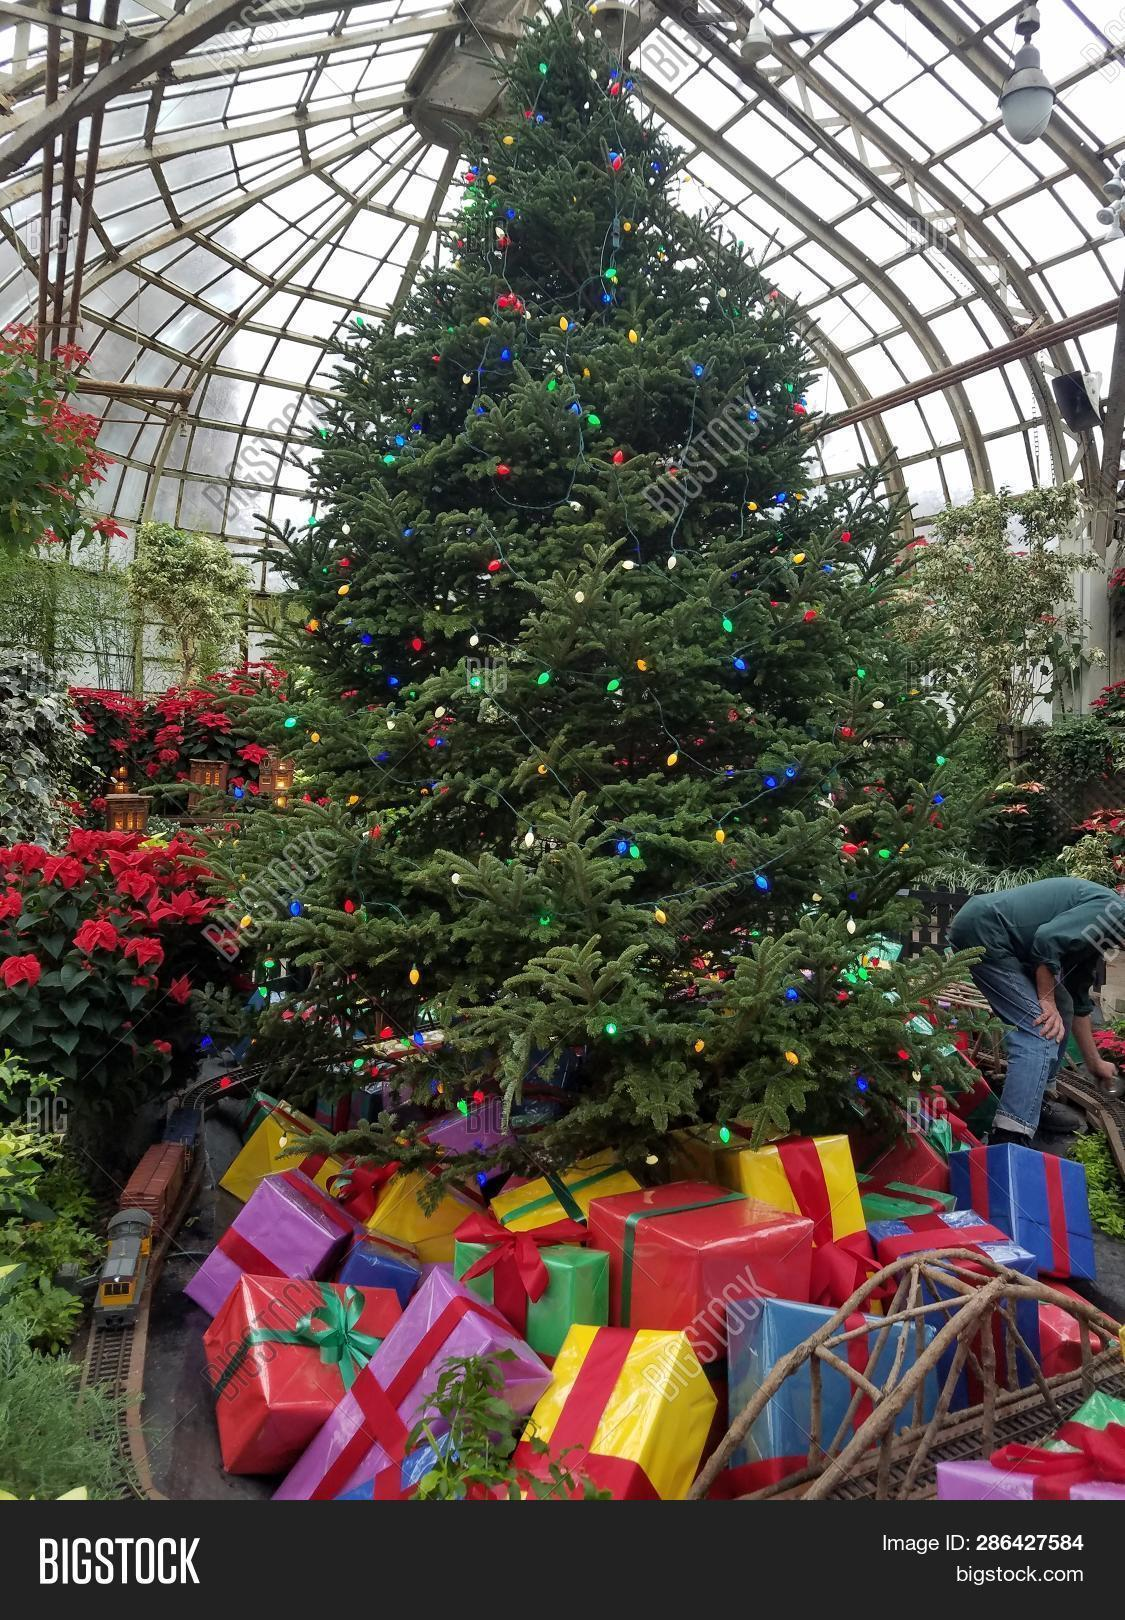 Christmas In Chicago 2018.Chicago Il November Image Photo Free Trial Bigstock